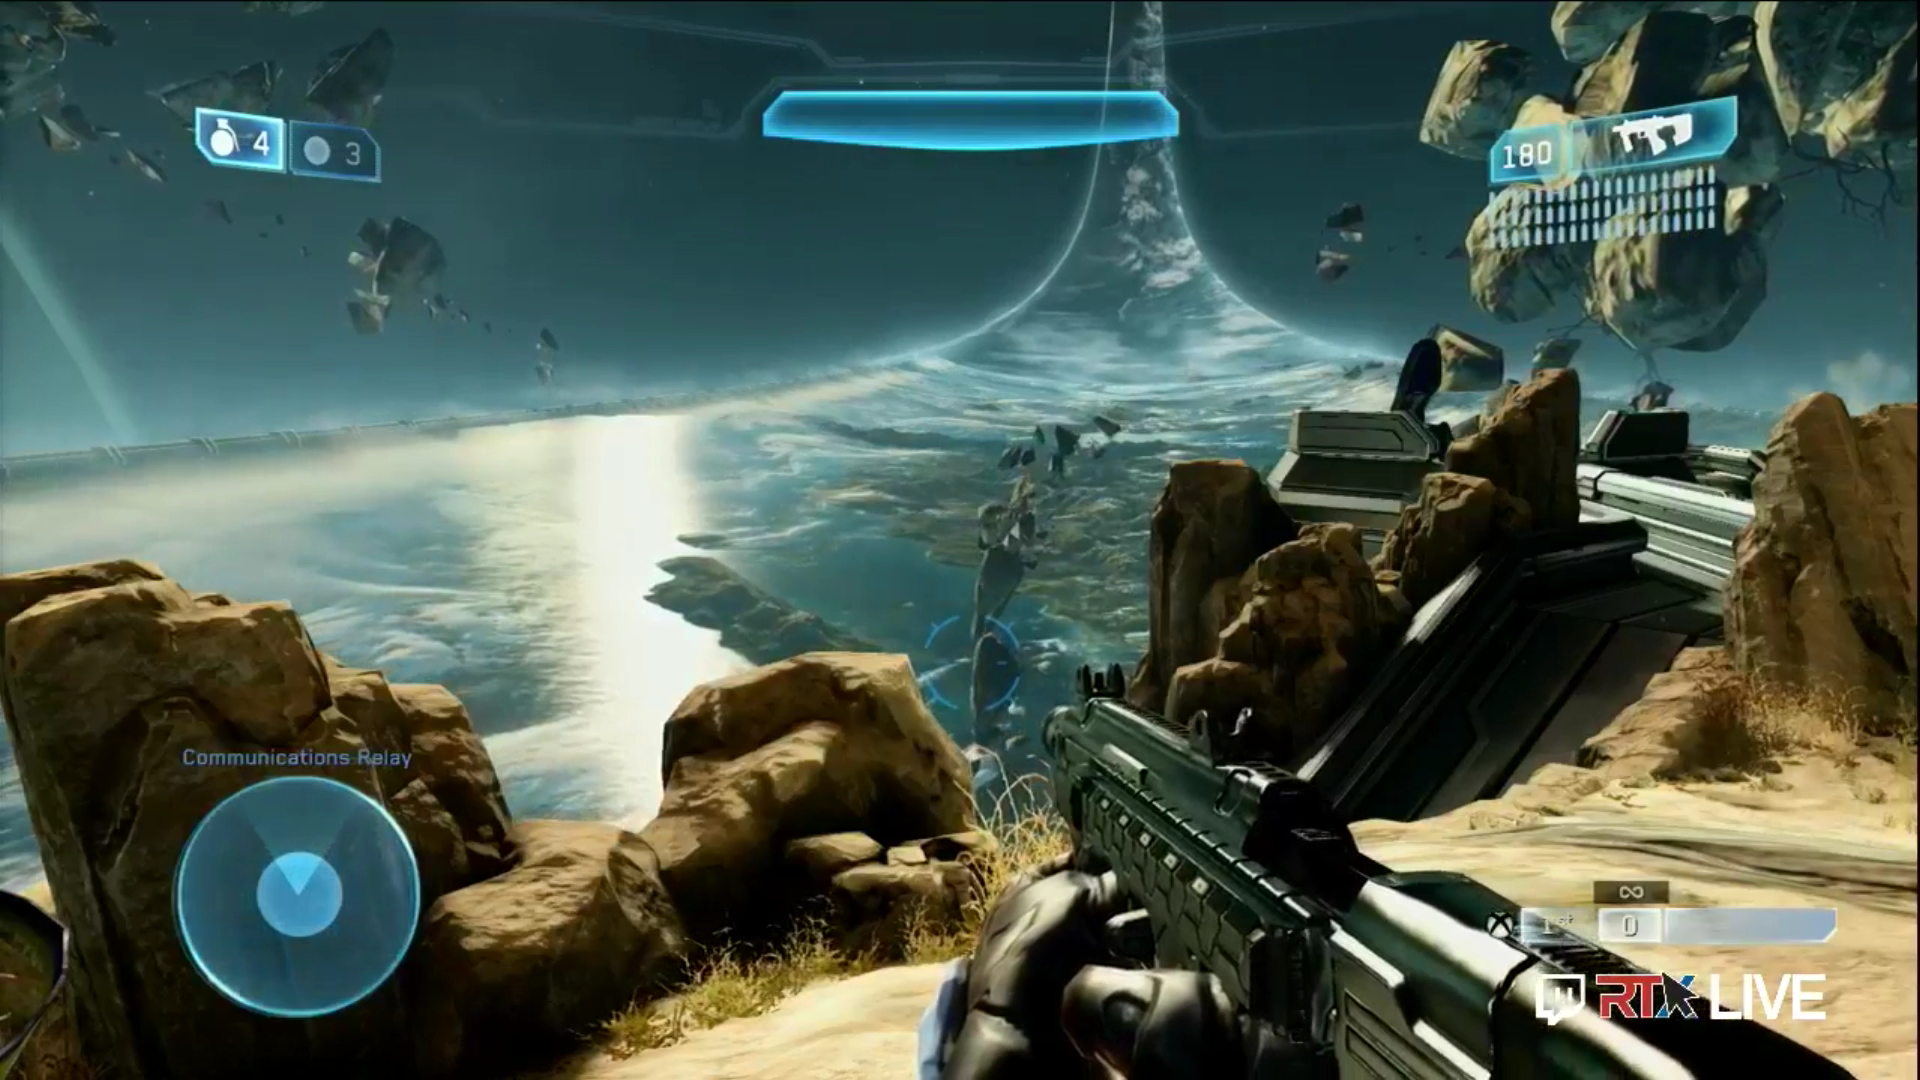 halo-rtx-2014-panel-screenshot-2014-07-05-10-29-25